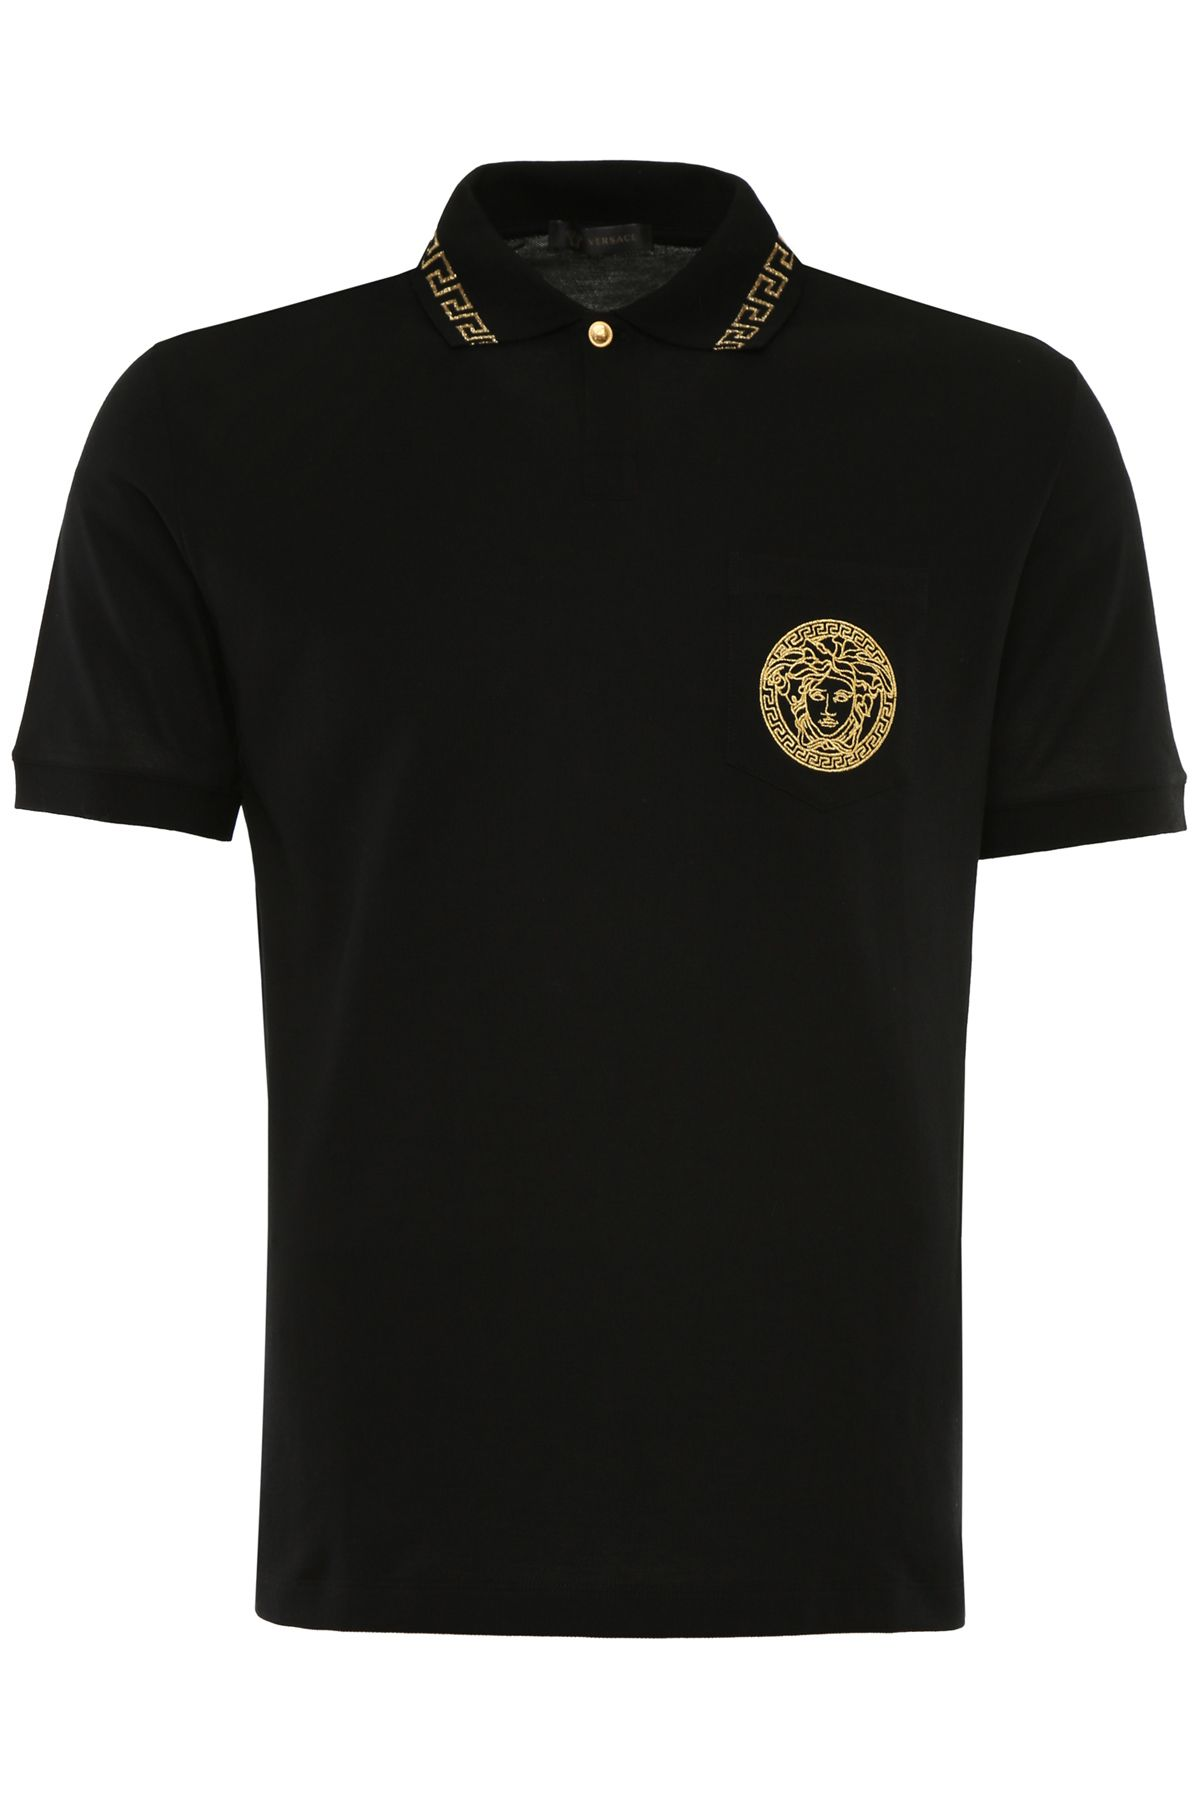 Versace embroidered polo shirt nero oro nero men 39 s for Polo shirts with embroidery